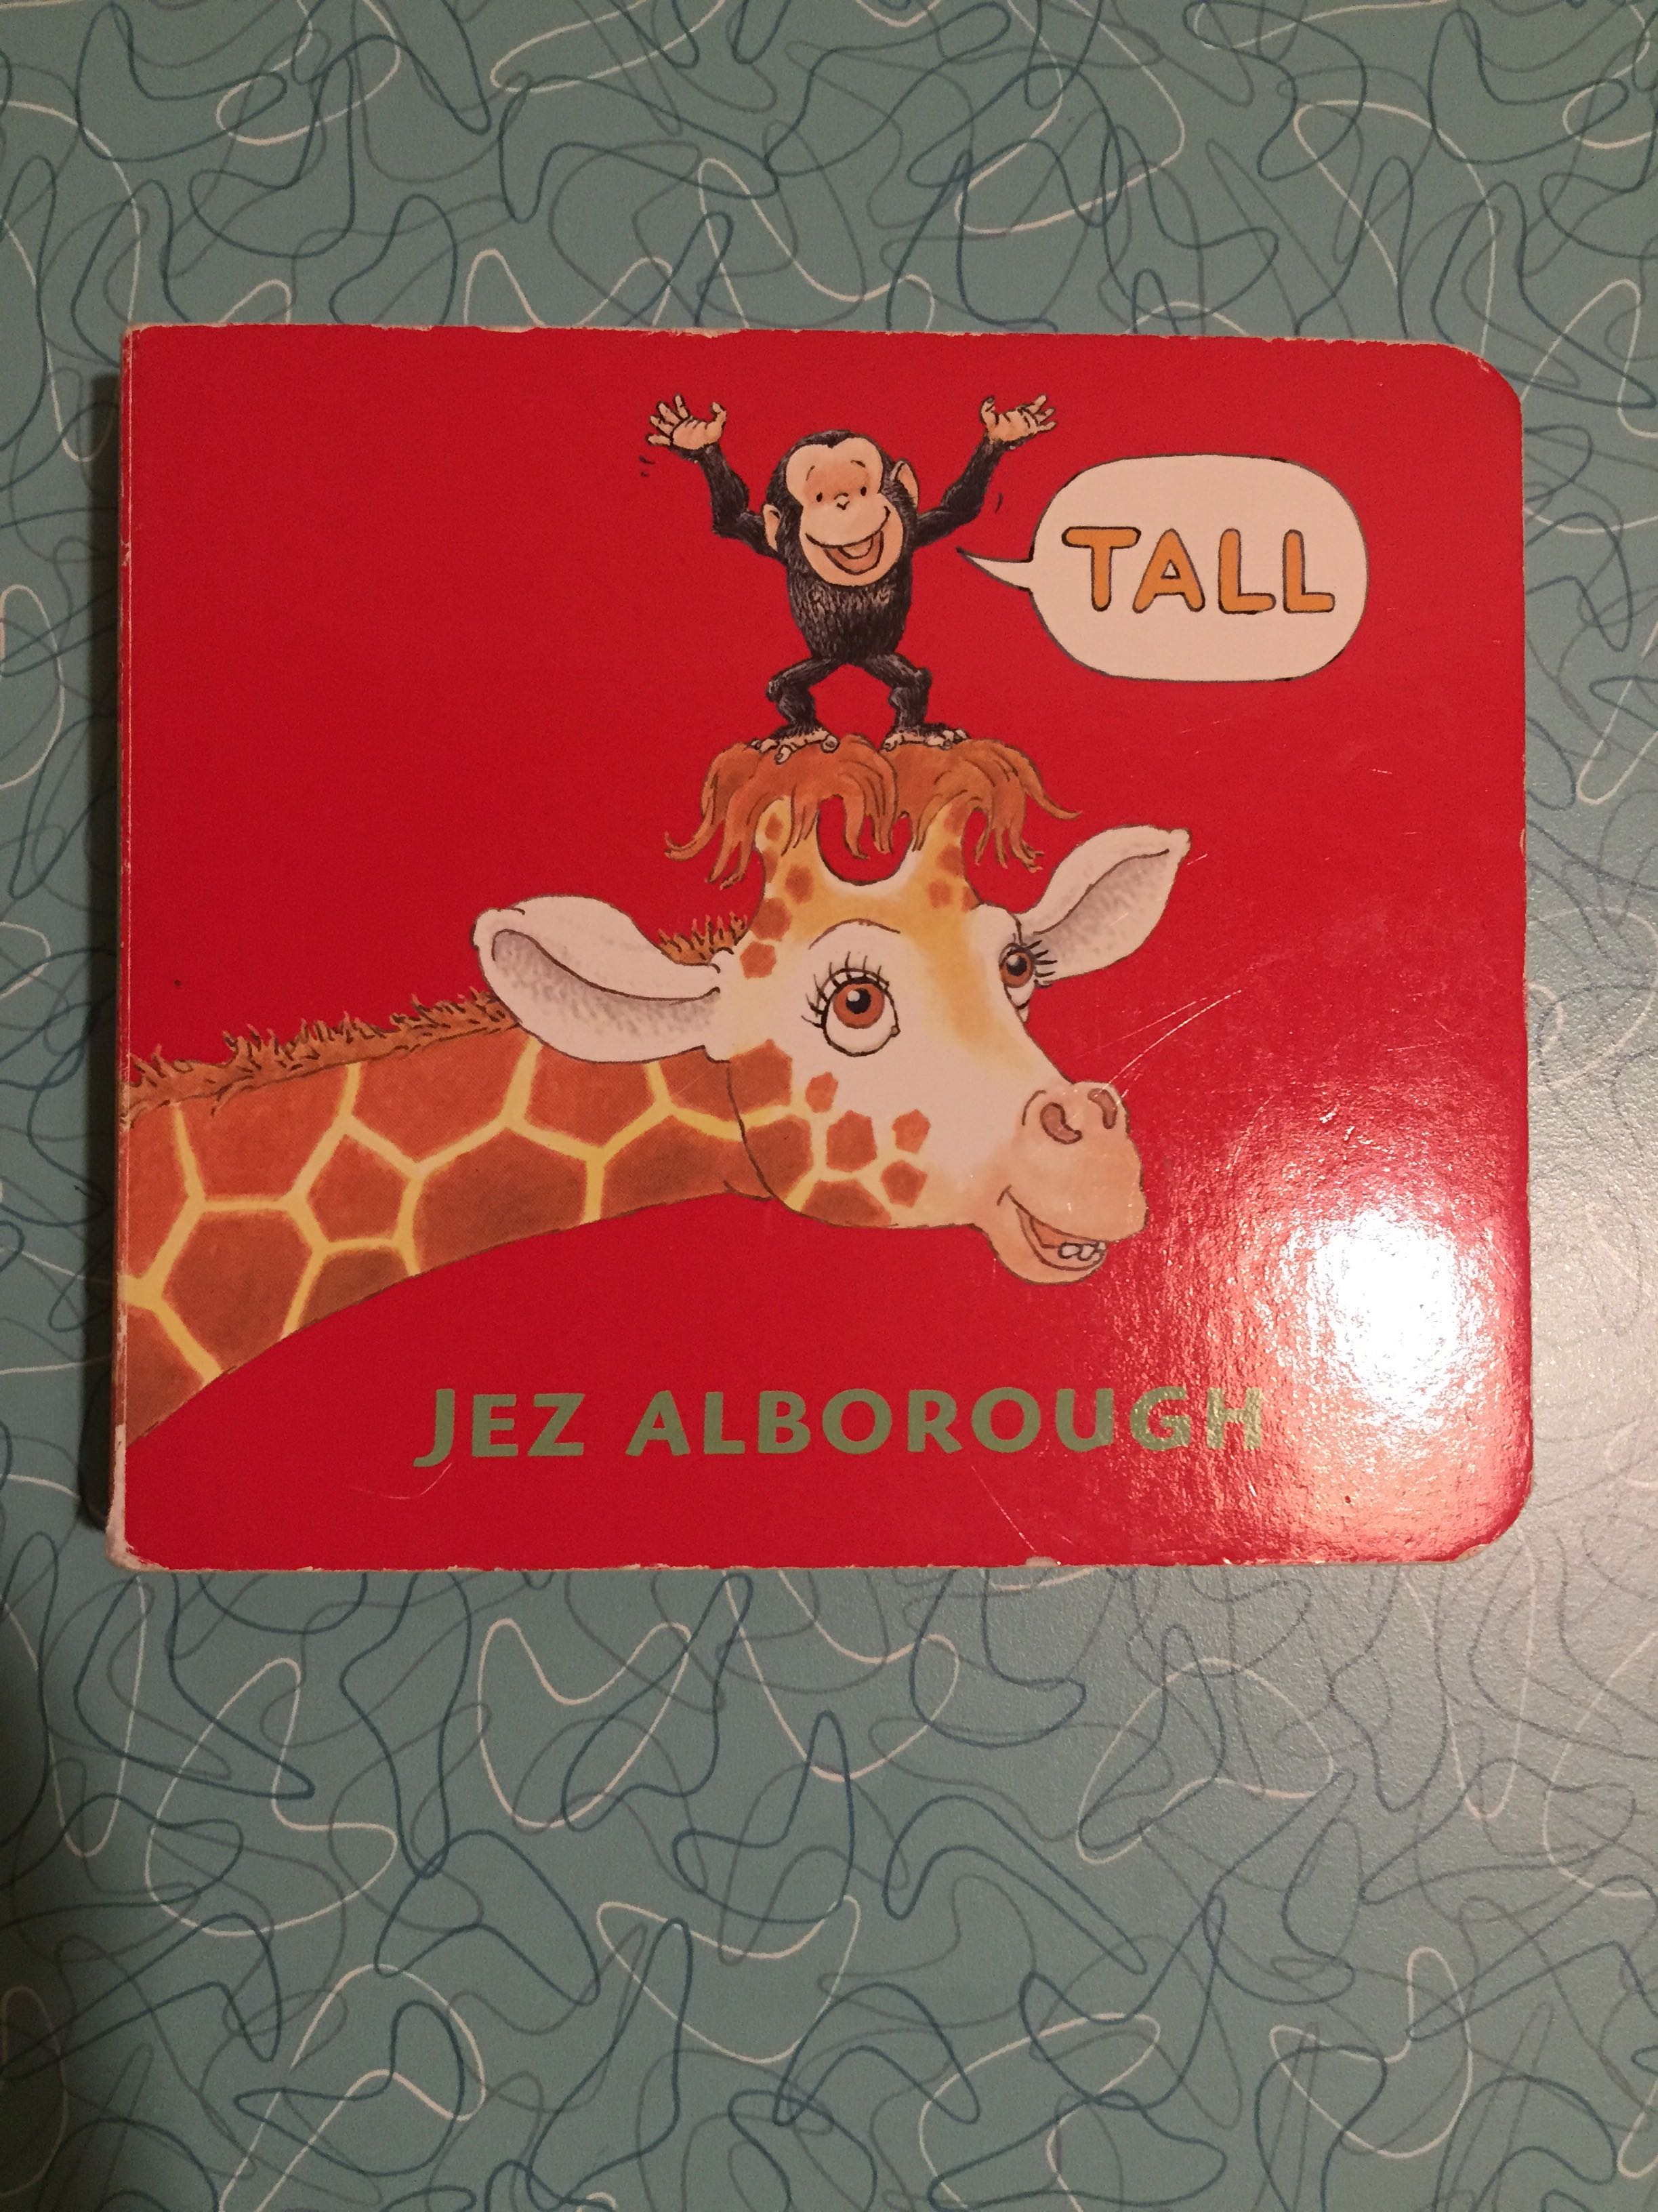 Tall - baby/toddler book